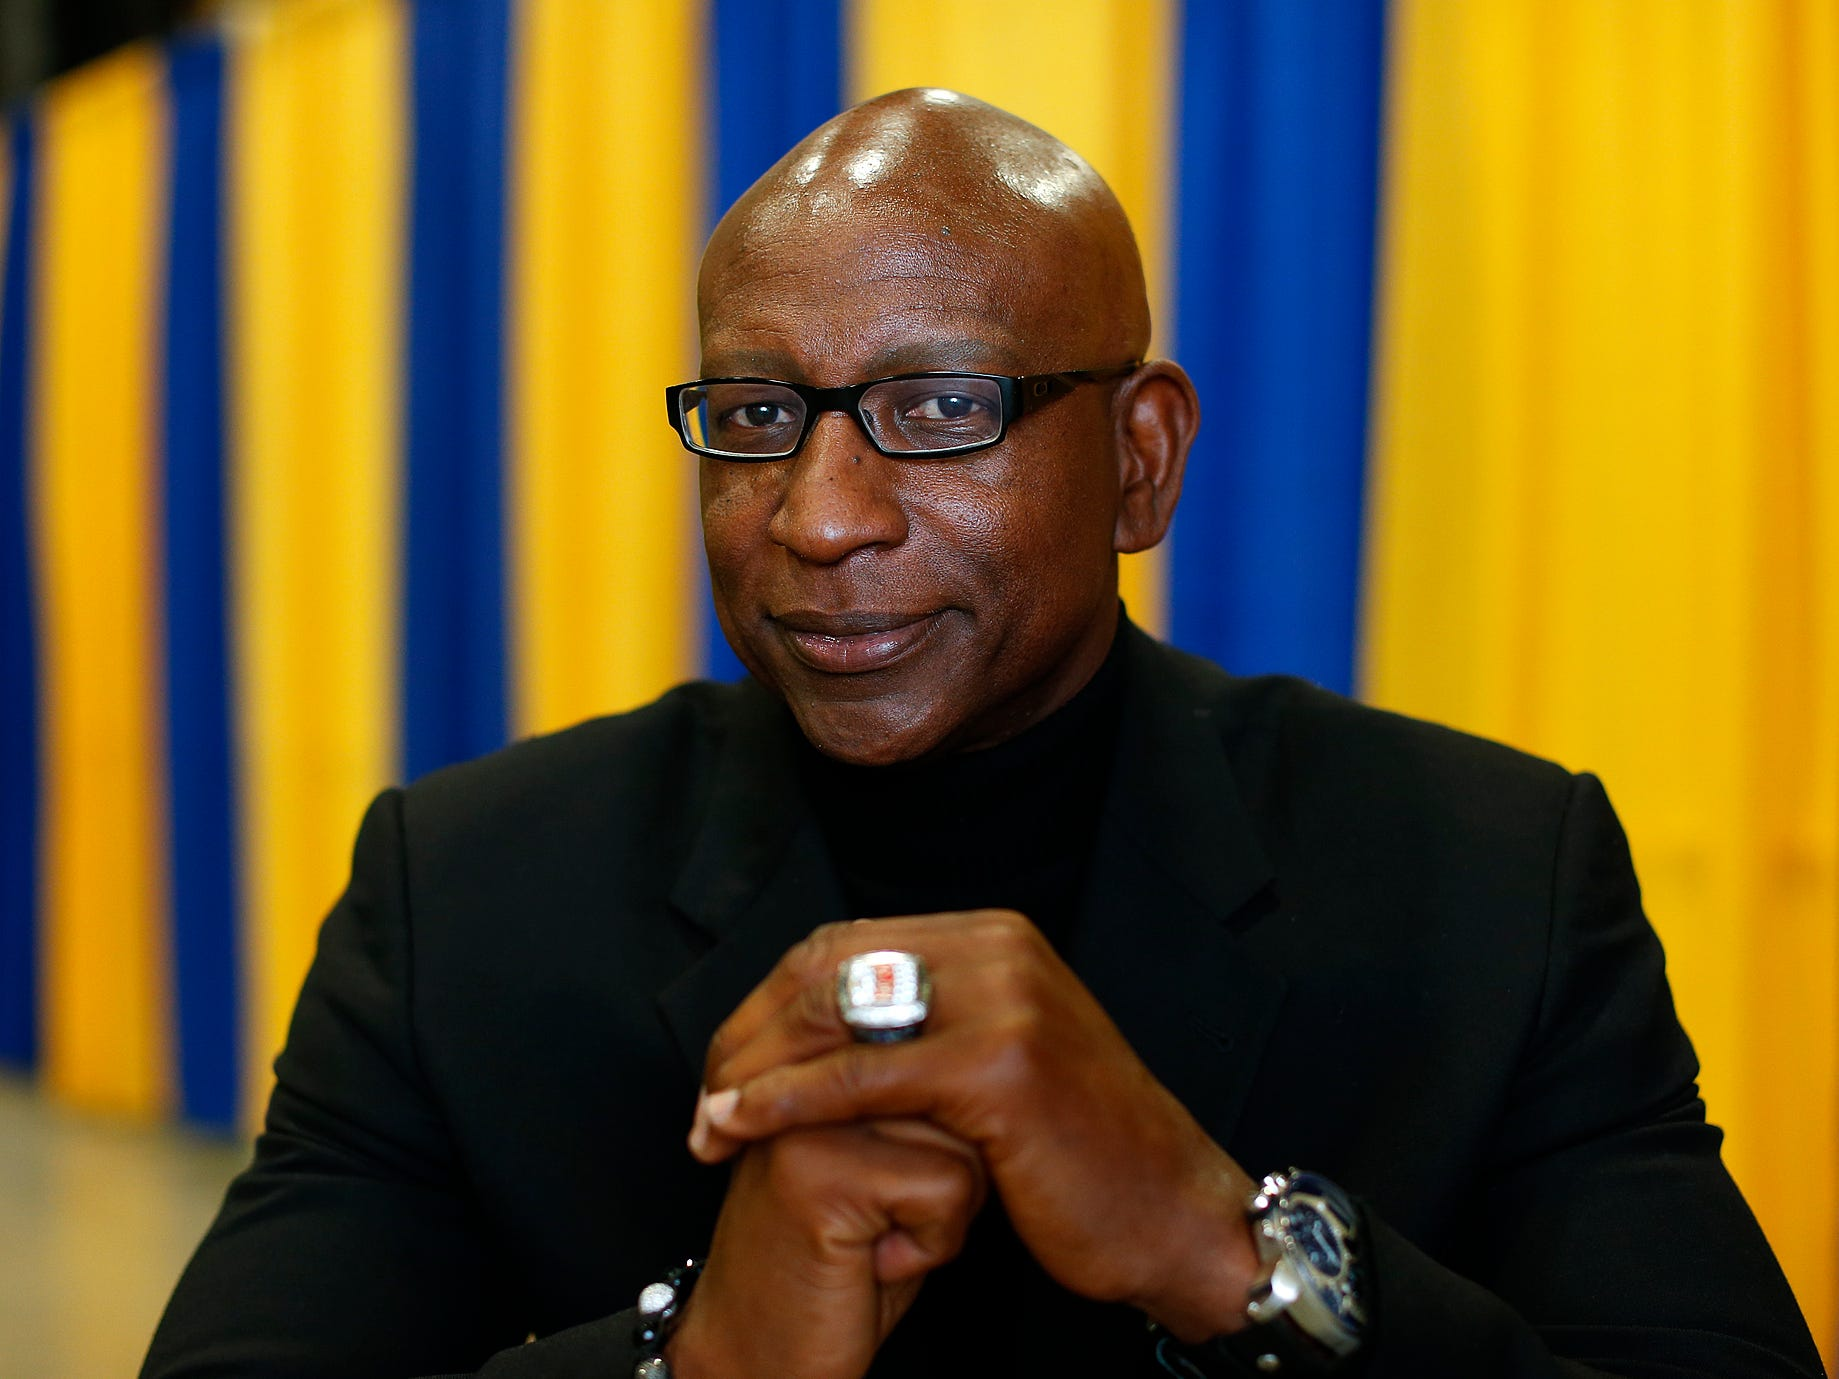 Football great Eric Dickerson poses for a photograph before speaking at the annual Triangle Classic banquet at the Four Seasons Arena Friday. TRIBUNE PHOTO/LARRY BECKNER